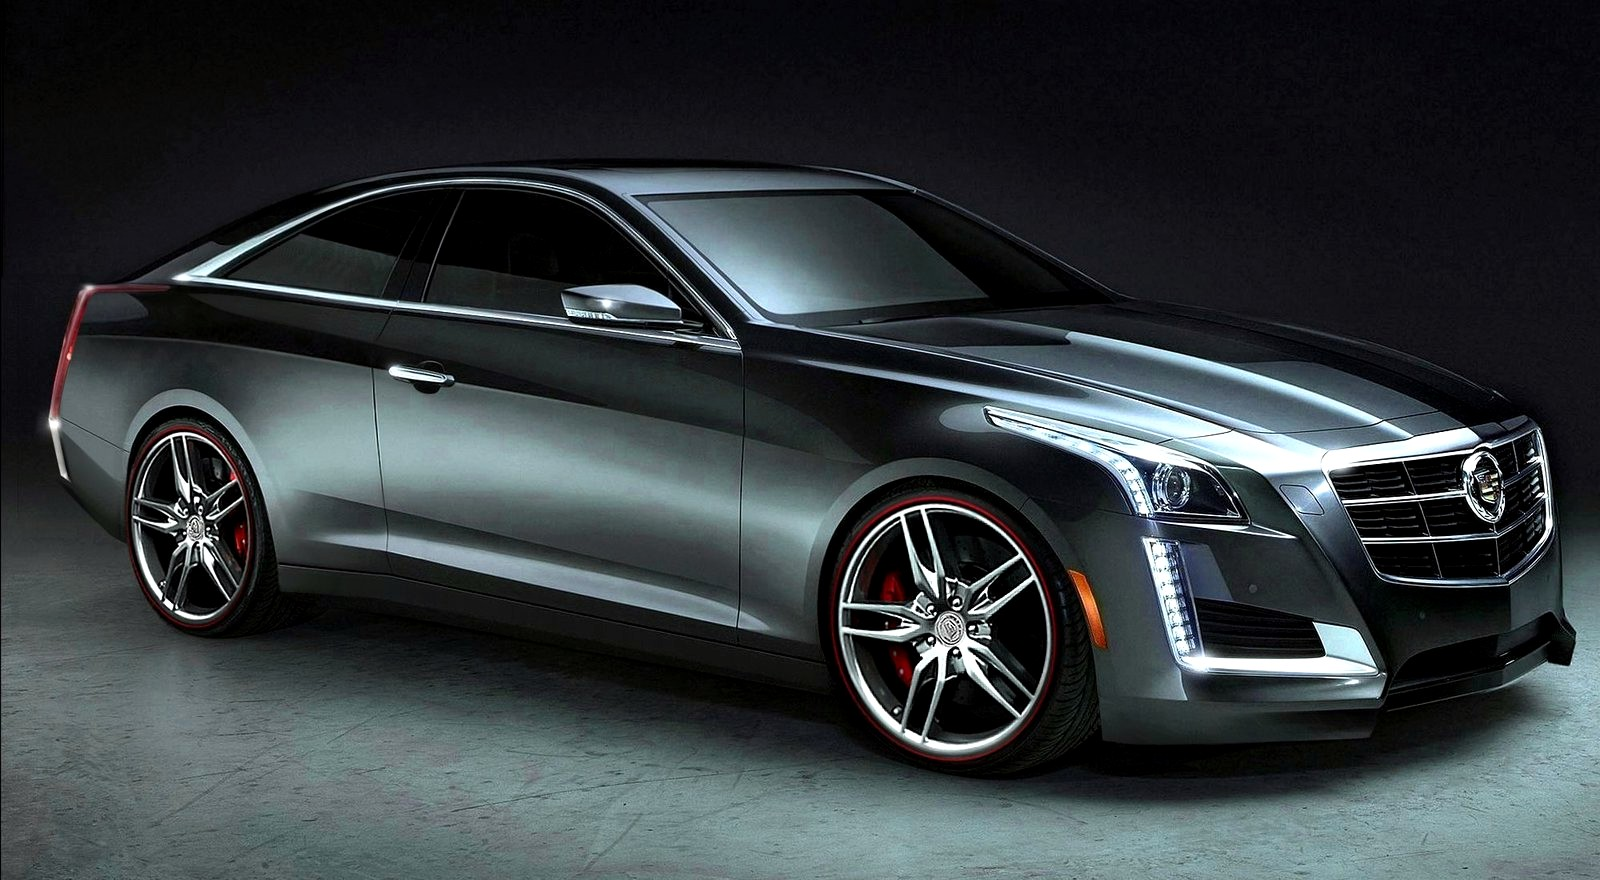 2015 Cadillac Cts-v Coupe #1